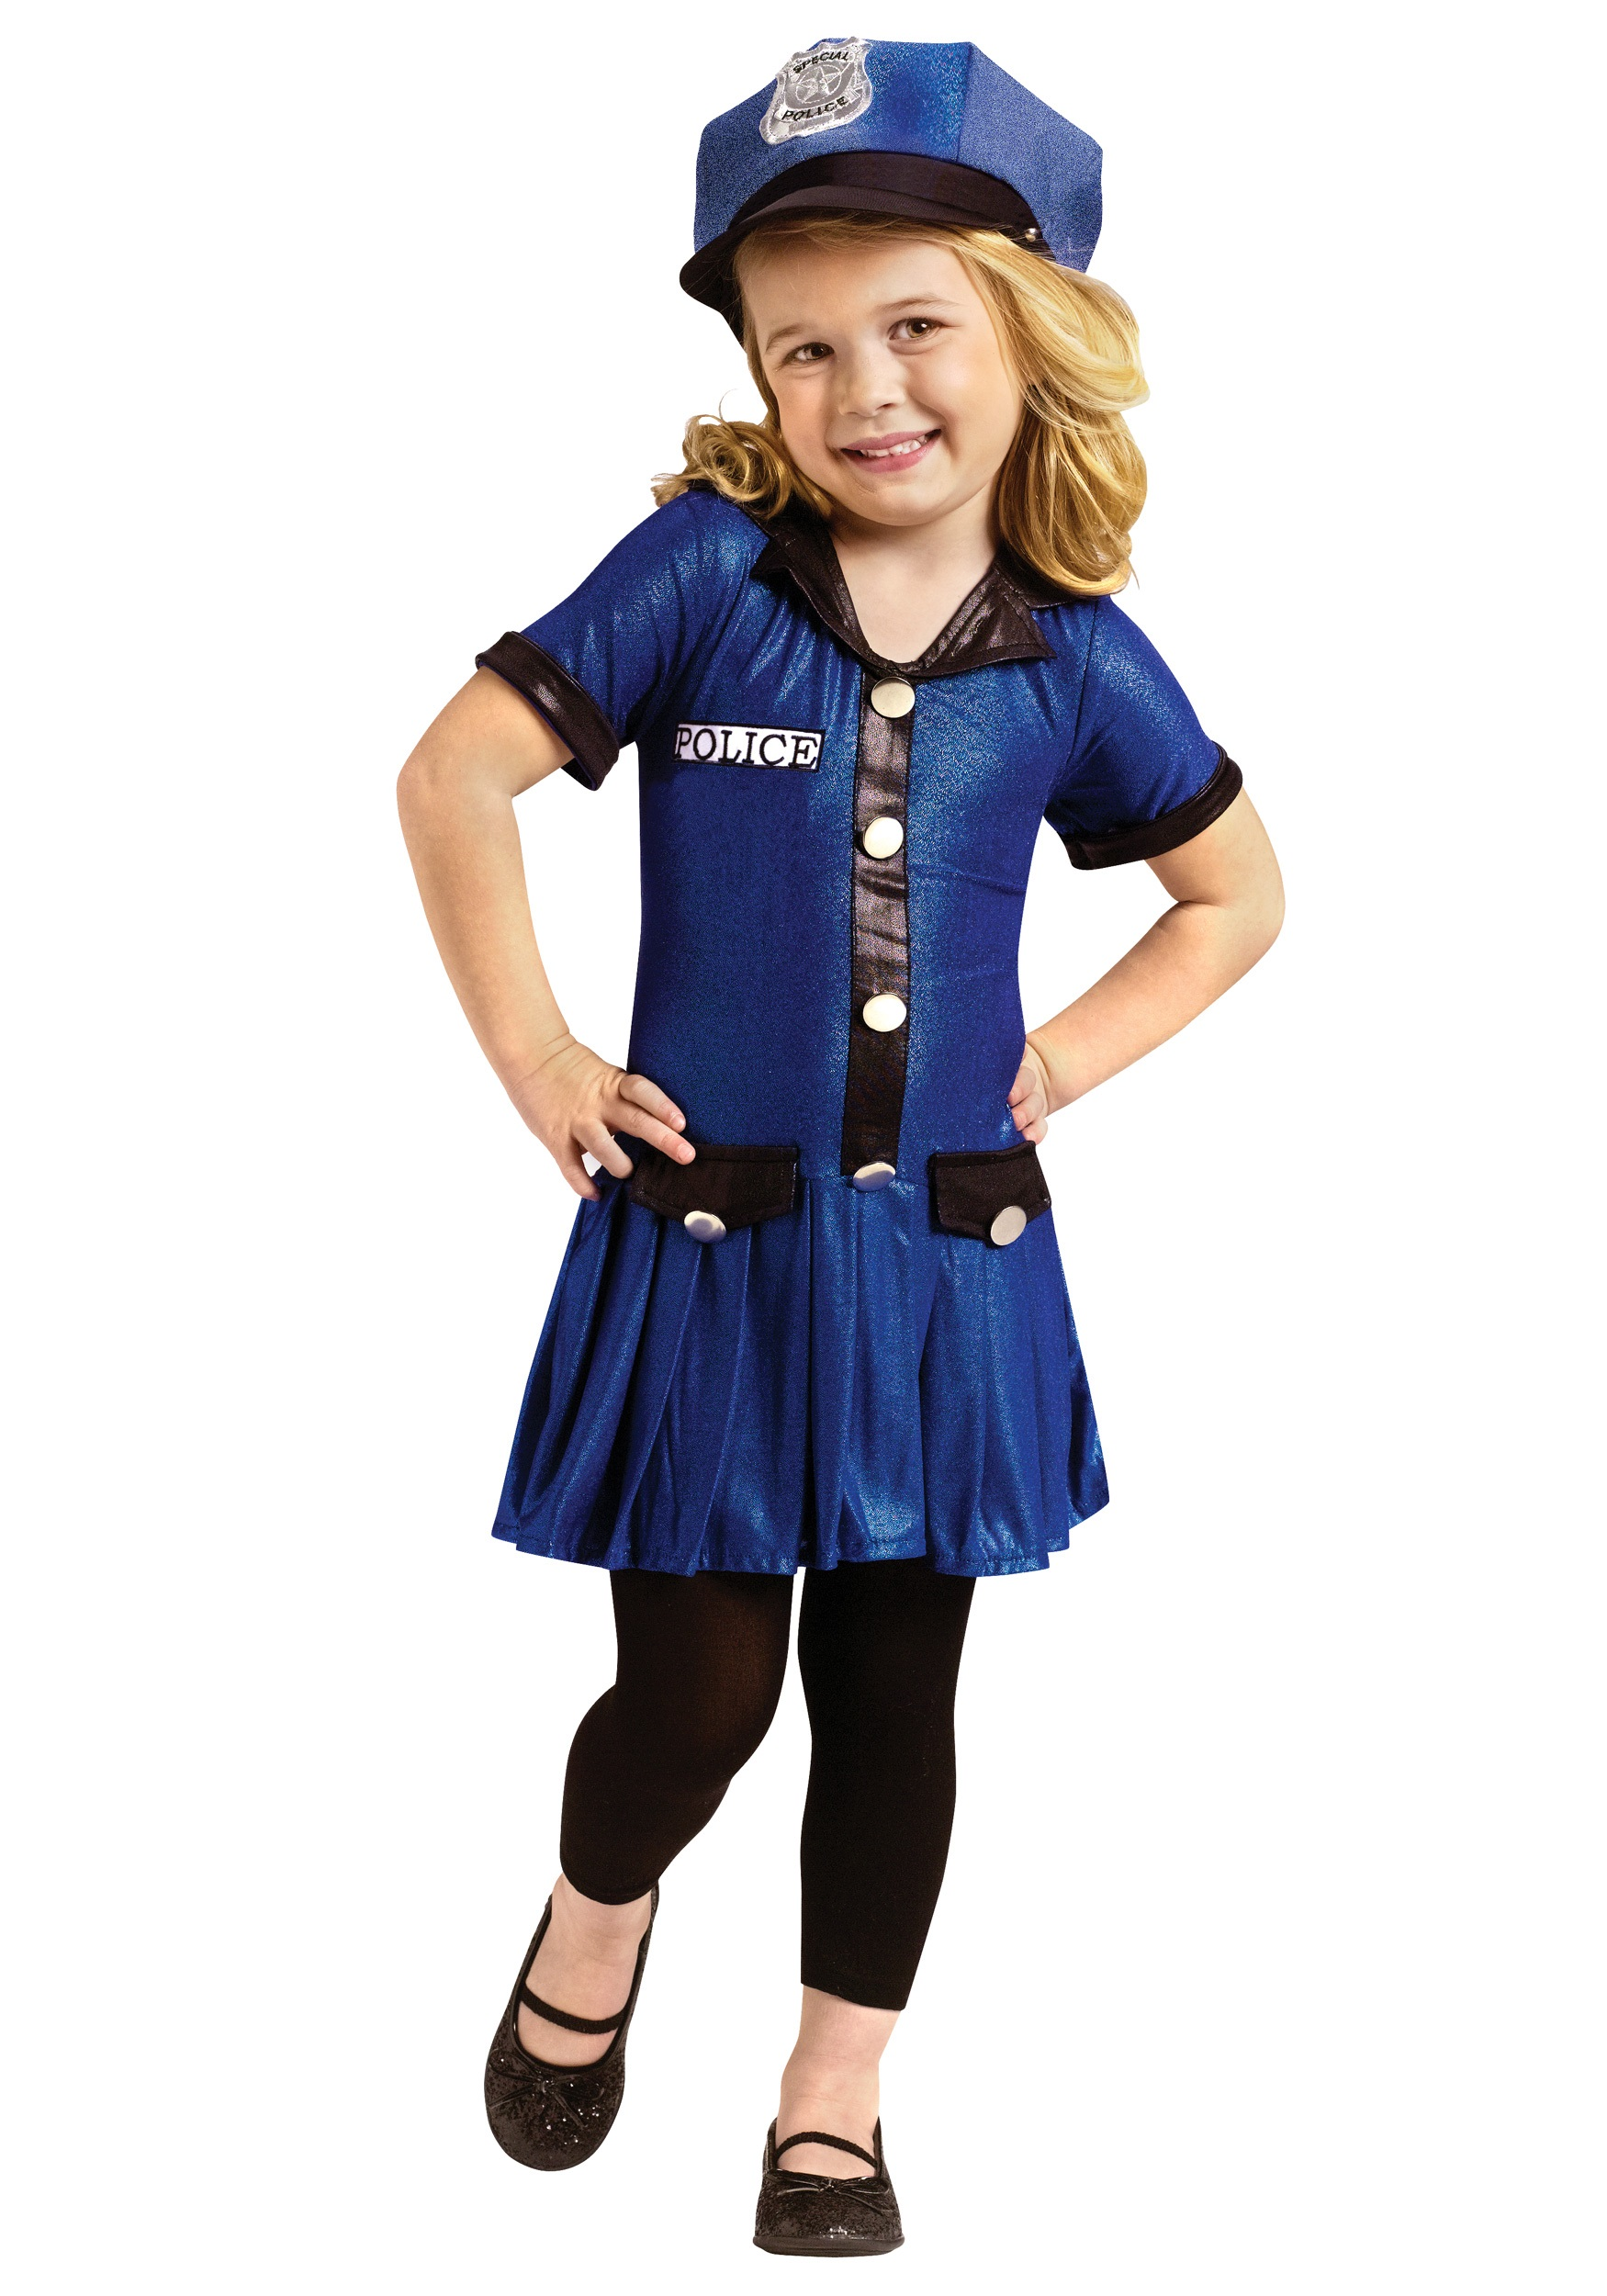 Toddler Girls Police Costume  sc 1 st  Halloween Costumes & Toddler Girls Police Costume - Halloween Costumes